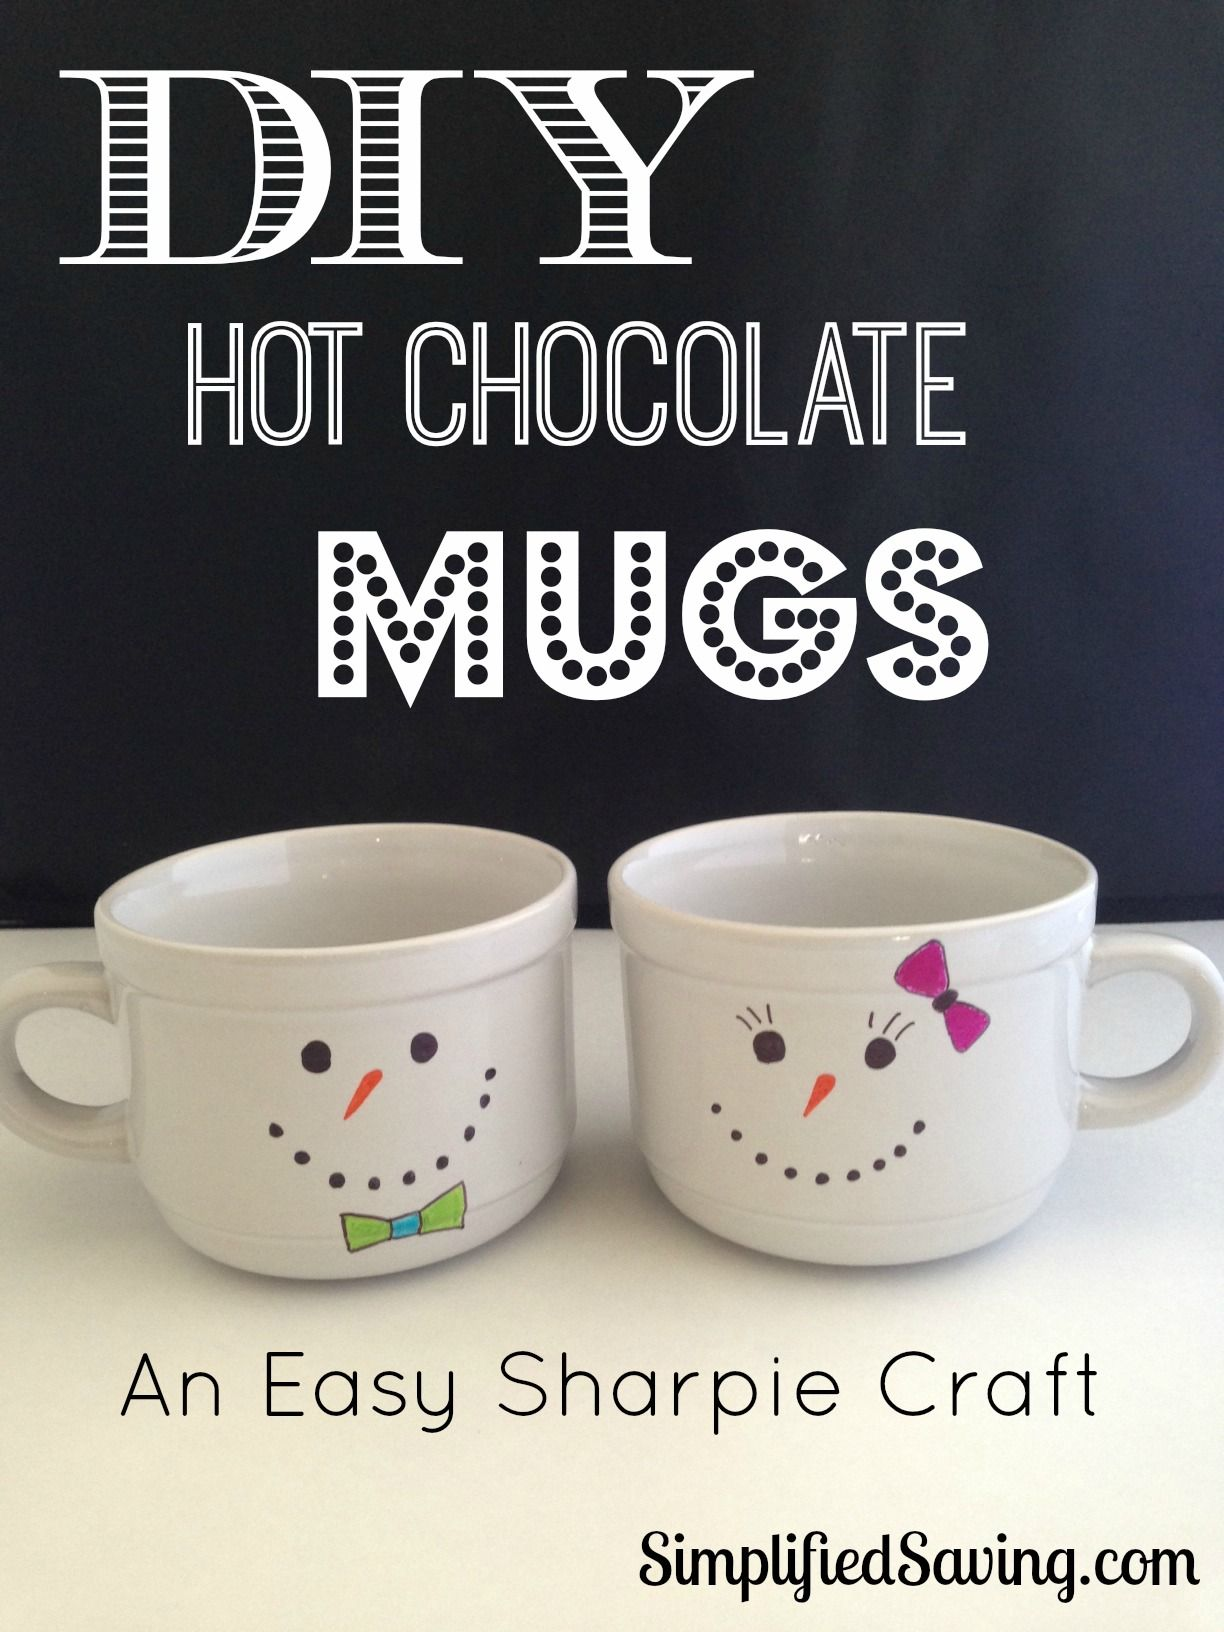 Mixed Items Snowman Personalised Gift With Your Text Great Coffee Mugs Christmas Mug Fast Color Holiday & Seasonal Décor